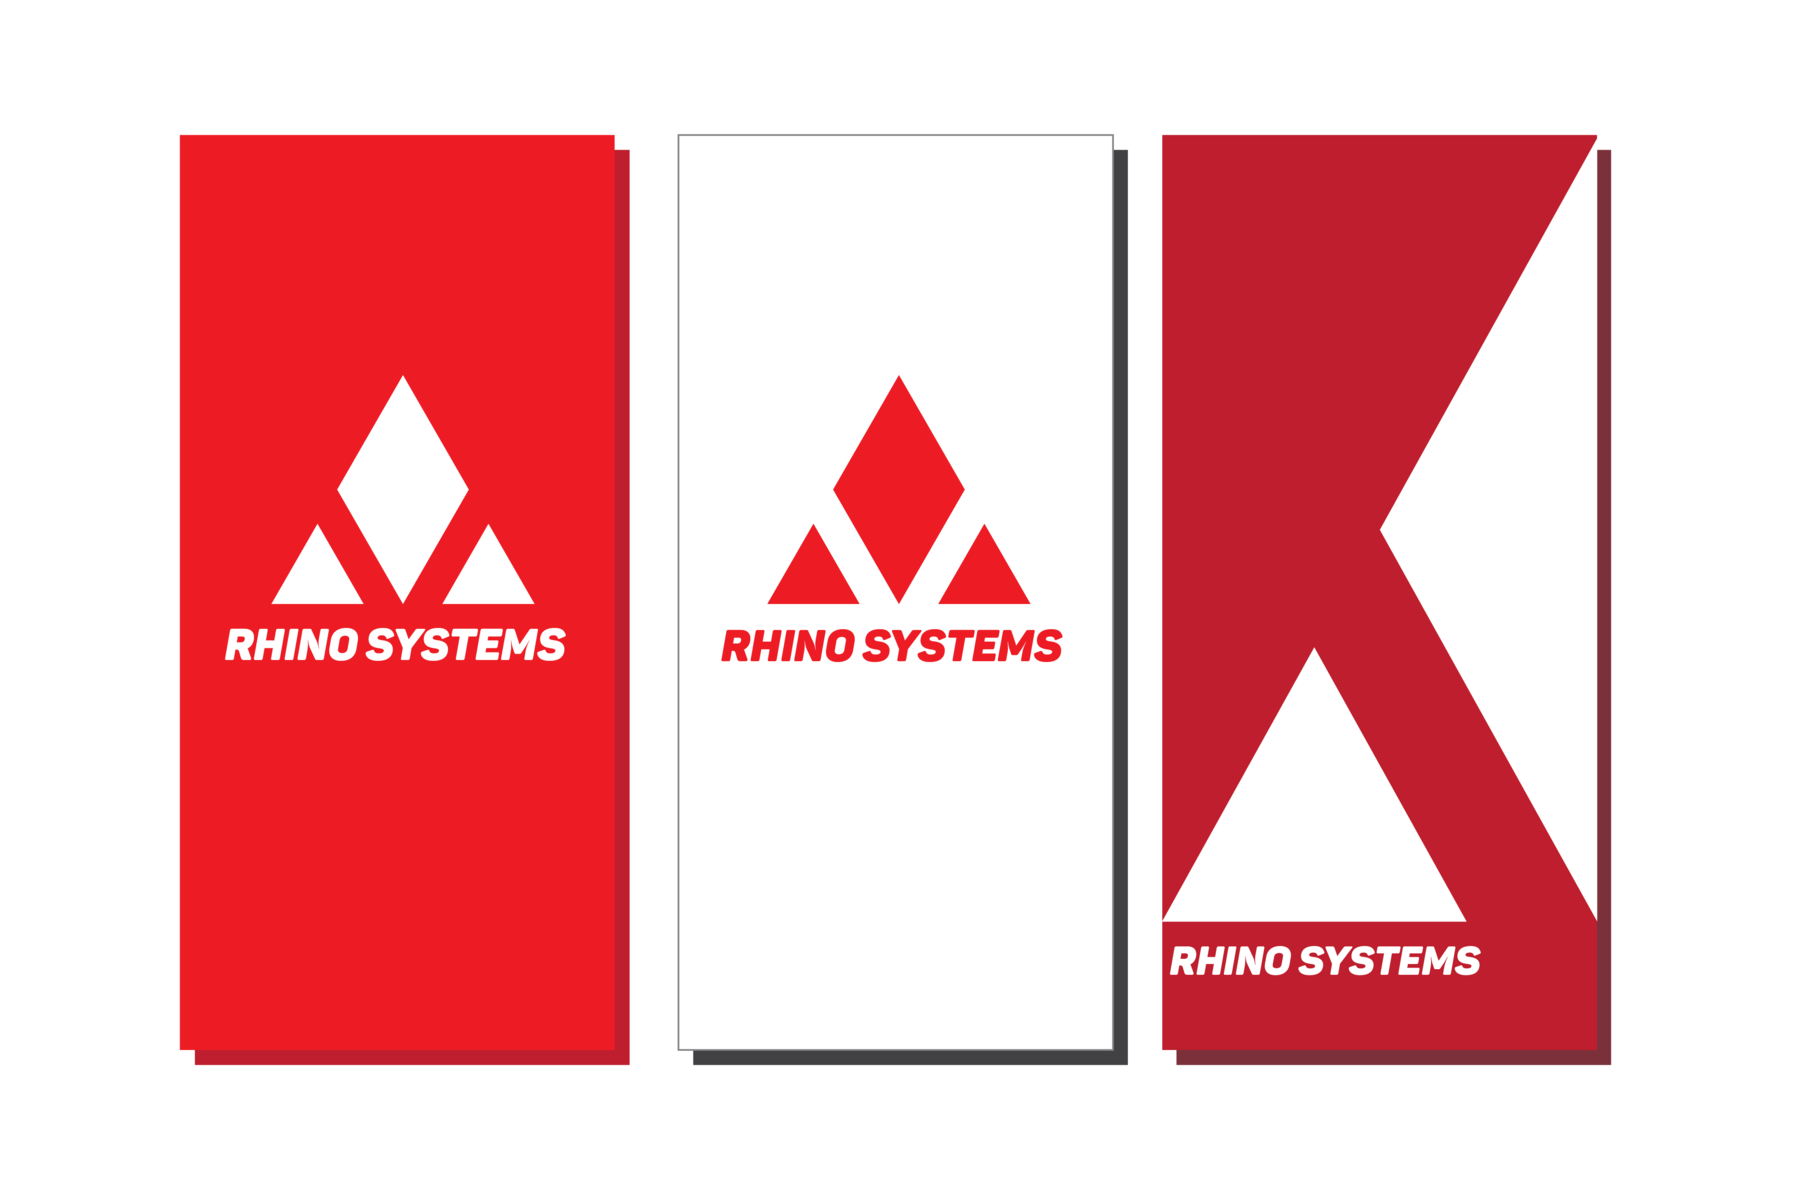 Cards for Rhino Systems displaying the identity of the company.